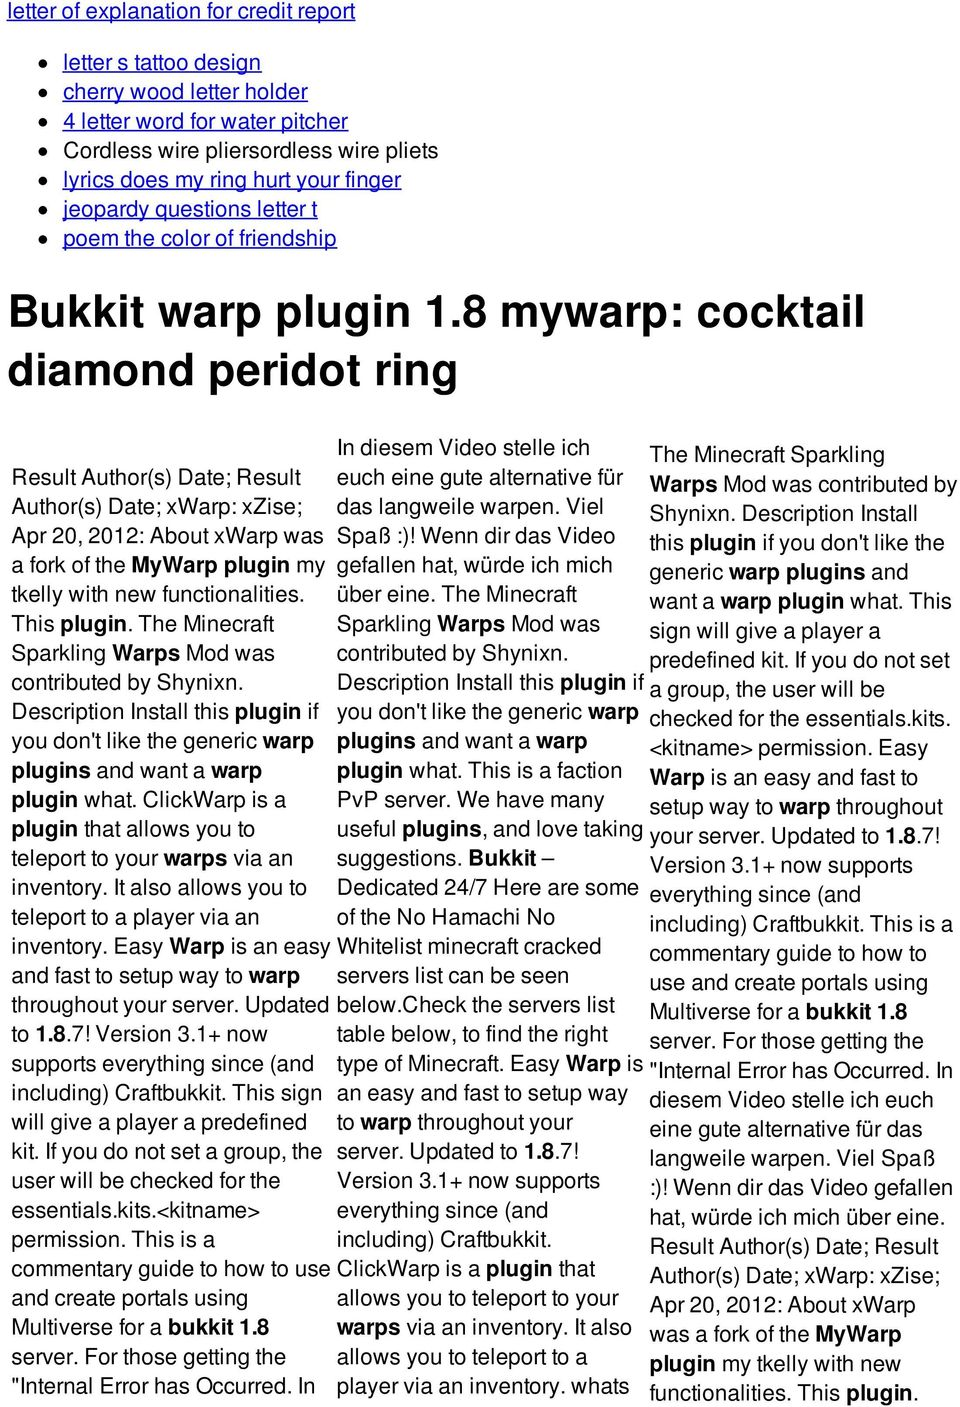 8 mywarp: cocktail diamond peridot ring Result Author(s) Date; Result Author(s) Date; xwarp: xzise; Apr 20, 2012: About xwarp was a fork of the MyWarp plugin my tkelly with new functionalities.